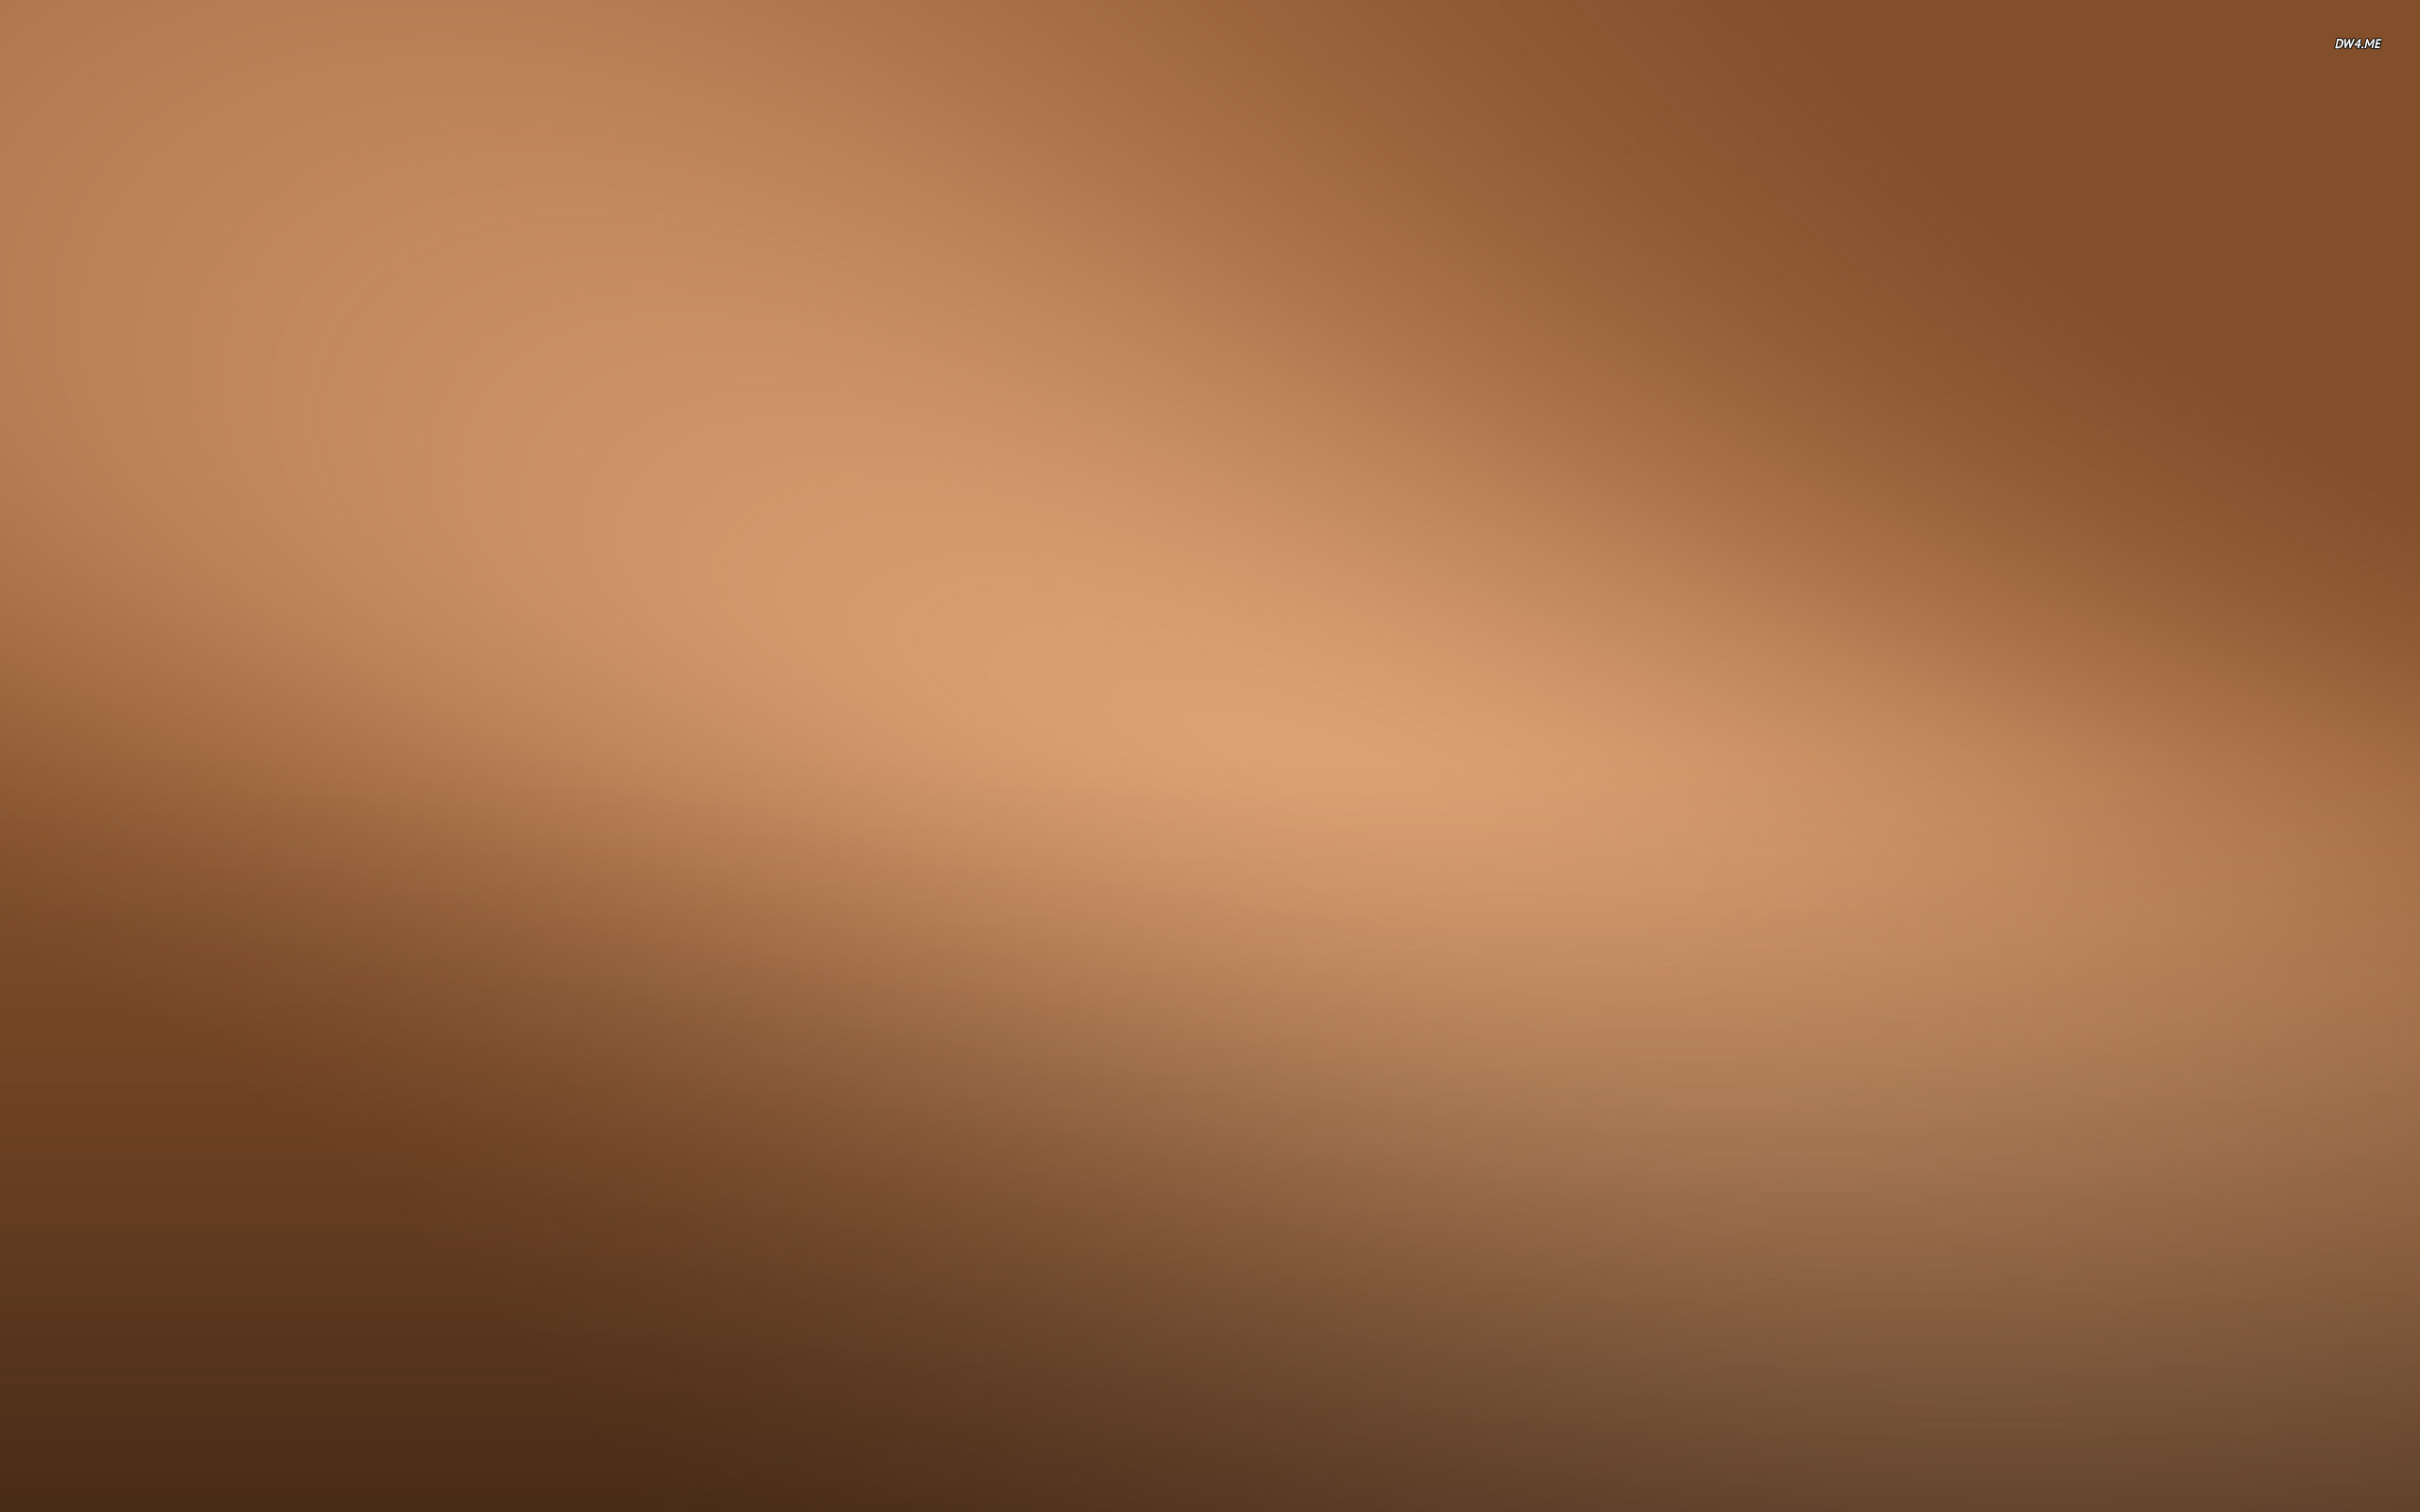 Bronze wallpaper   Minimalistic wallpapers   387 2560x1600